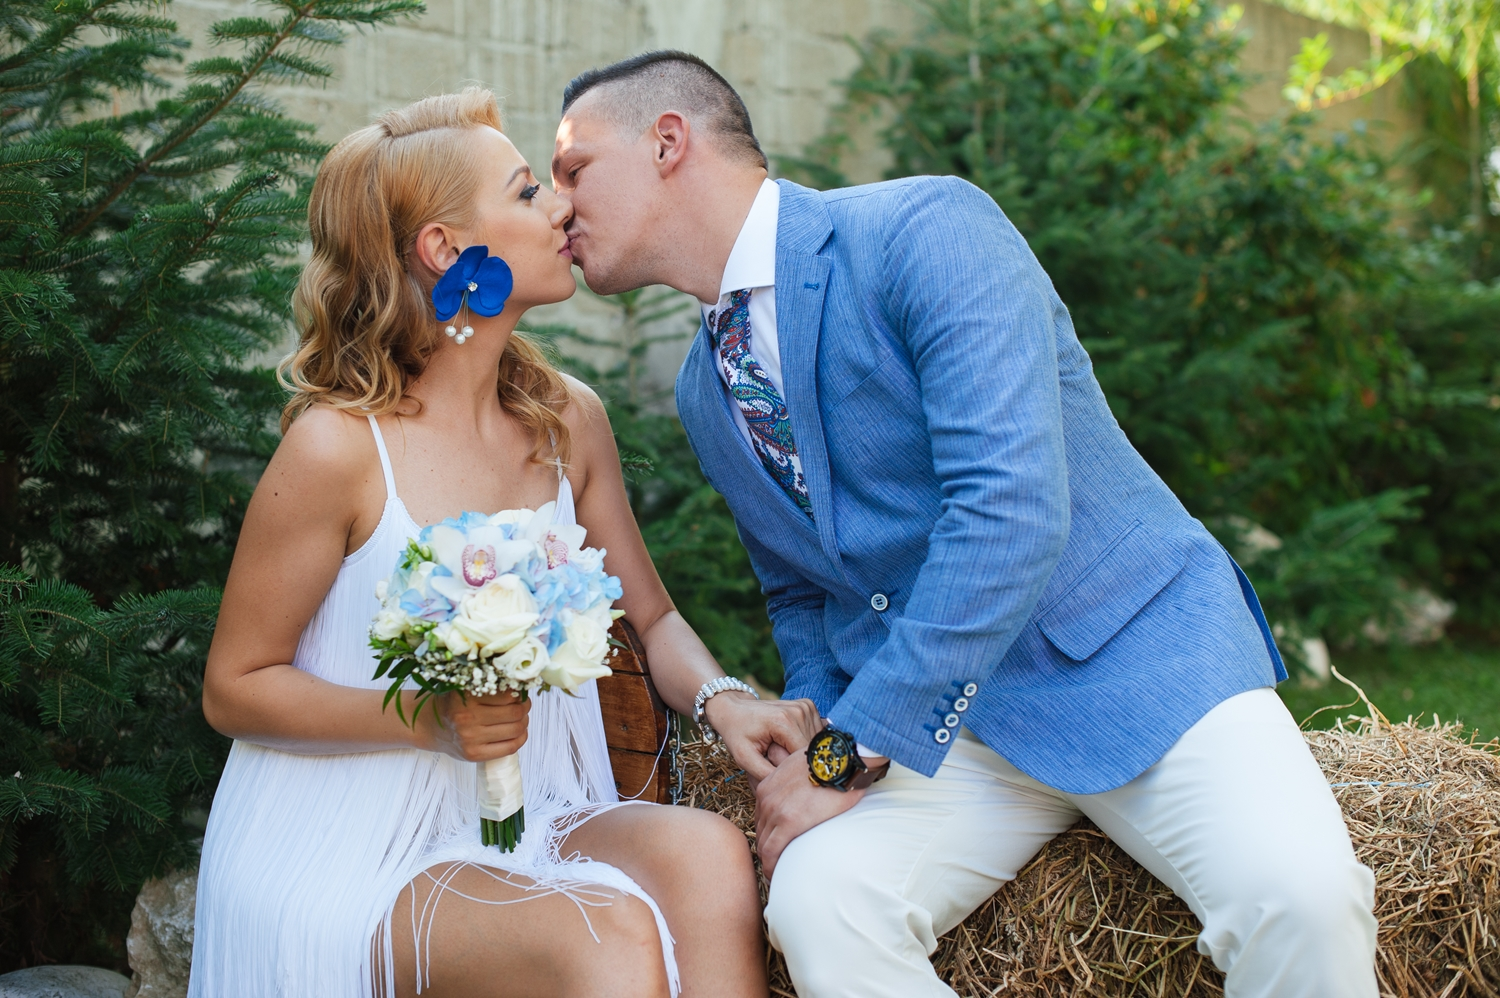 wedding photography, wedding photograph, open air wedding, party in the back yard